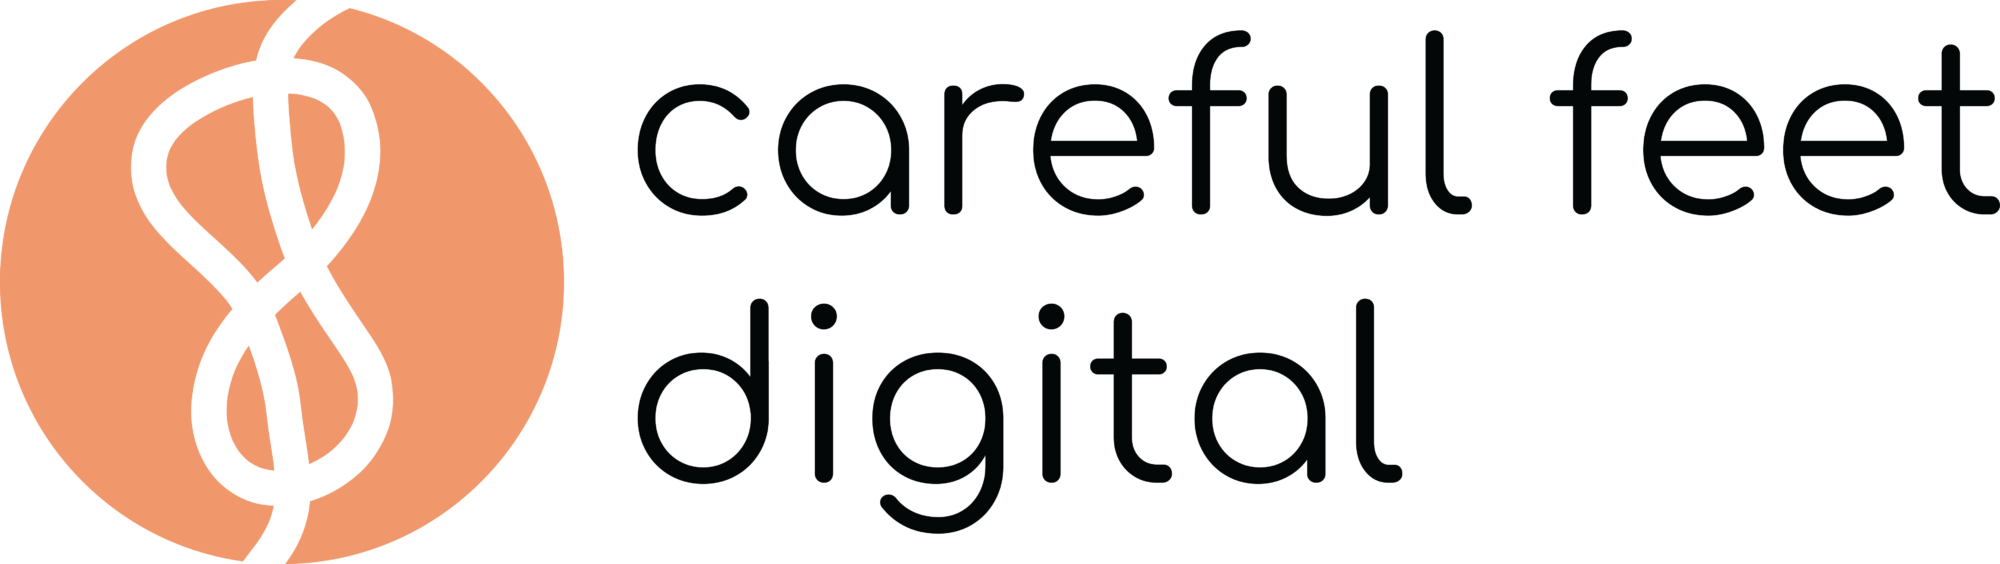 You are currently viewing Careful Feet Digital's 2020 Awards, Achievements and Honors